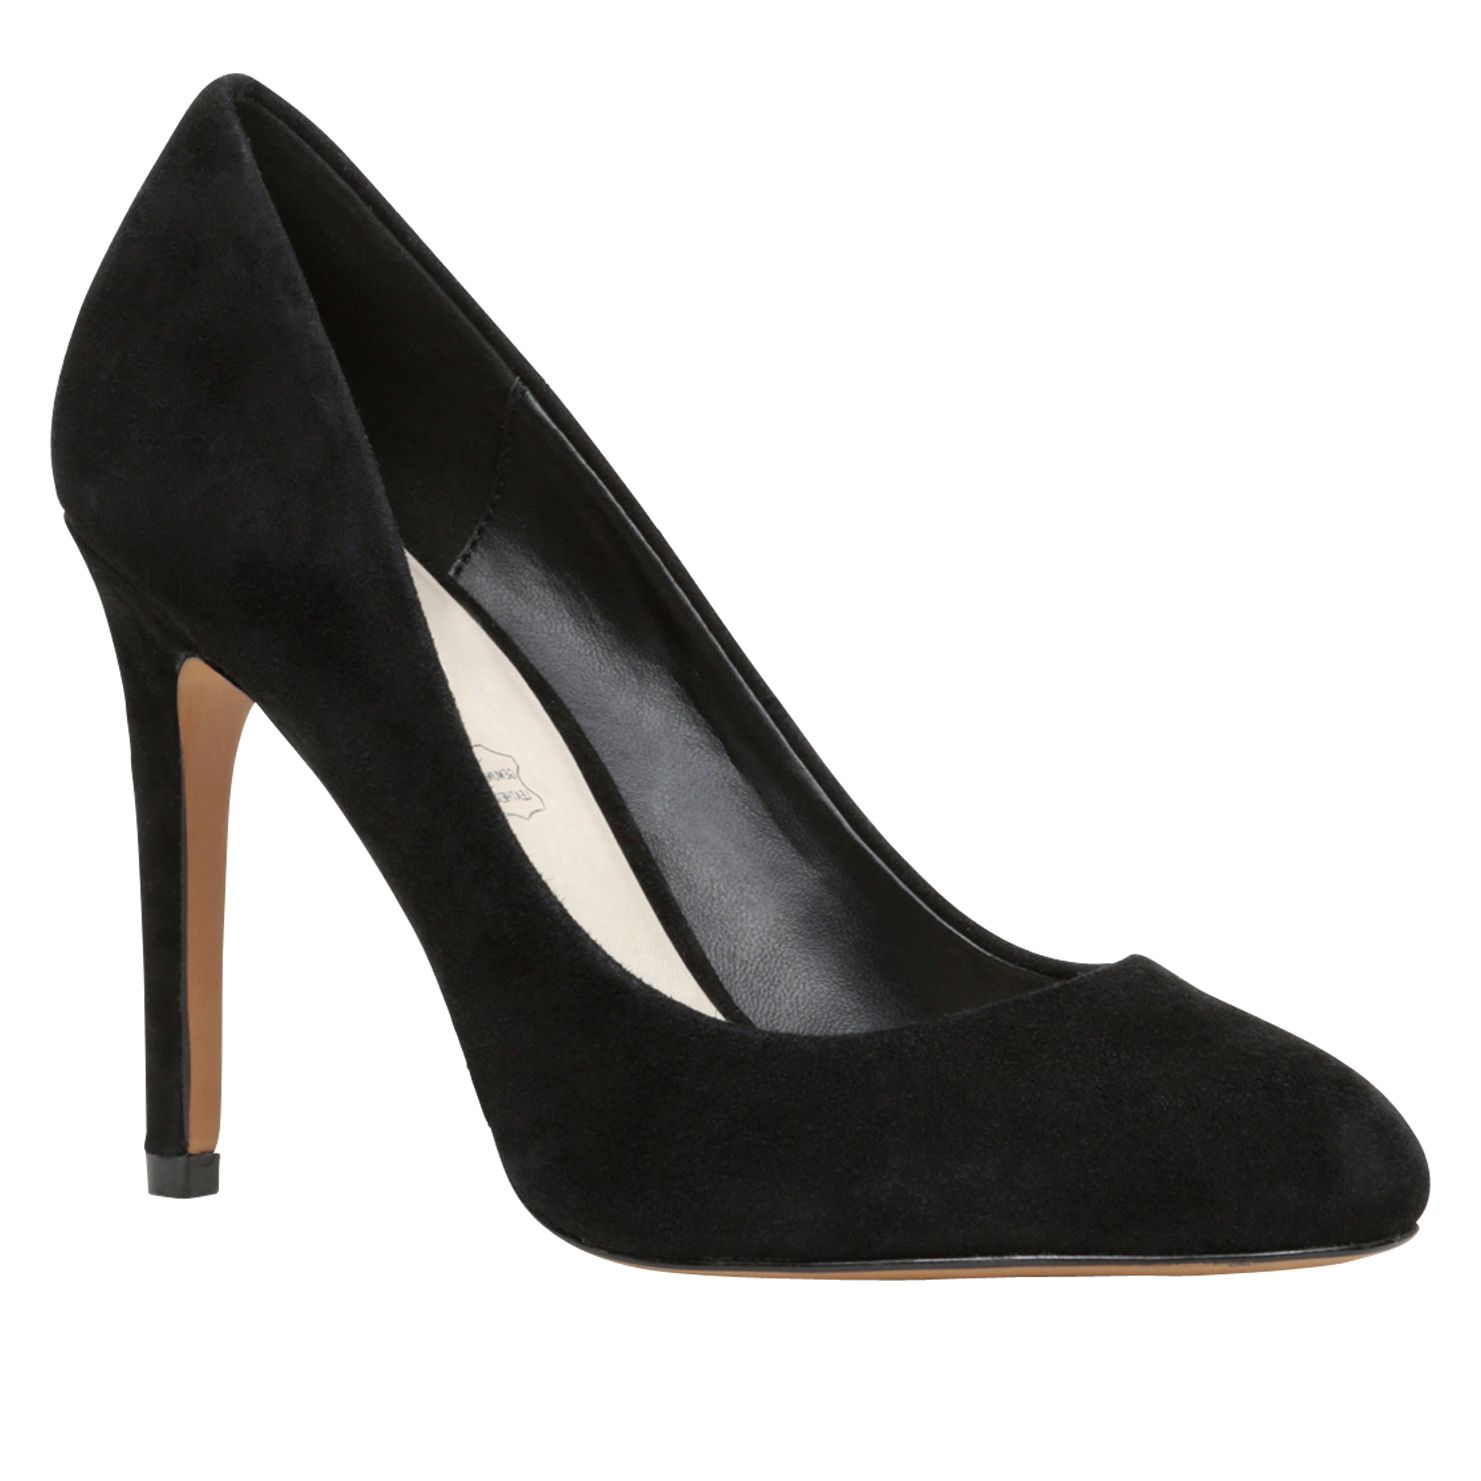 Sebec almond toe court shoes